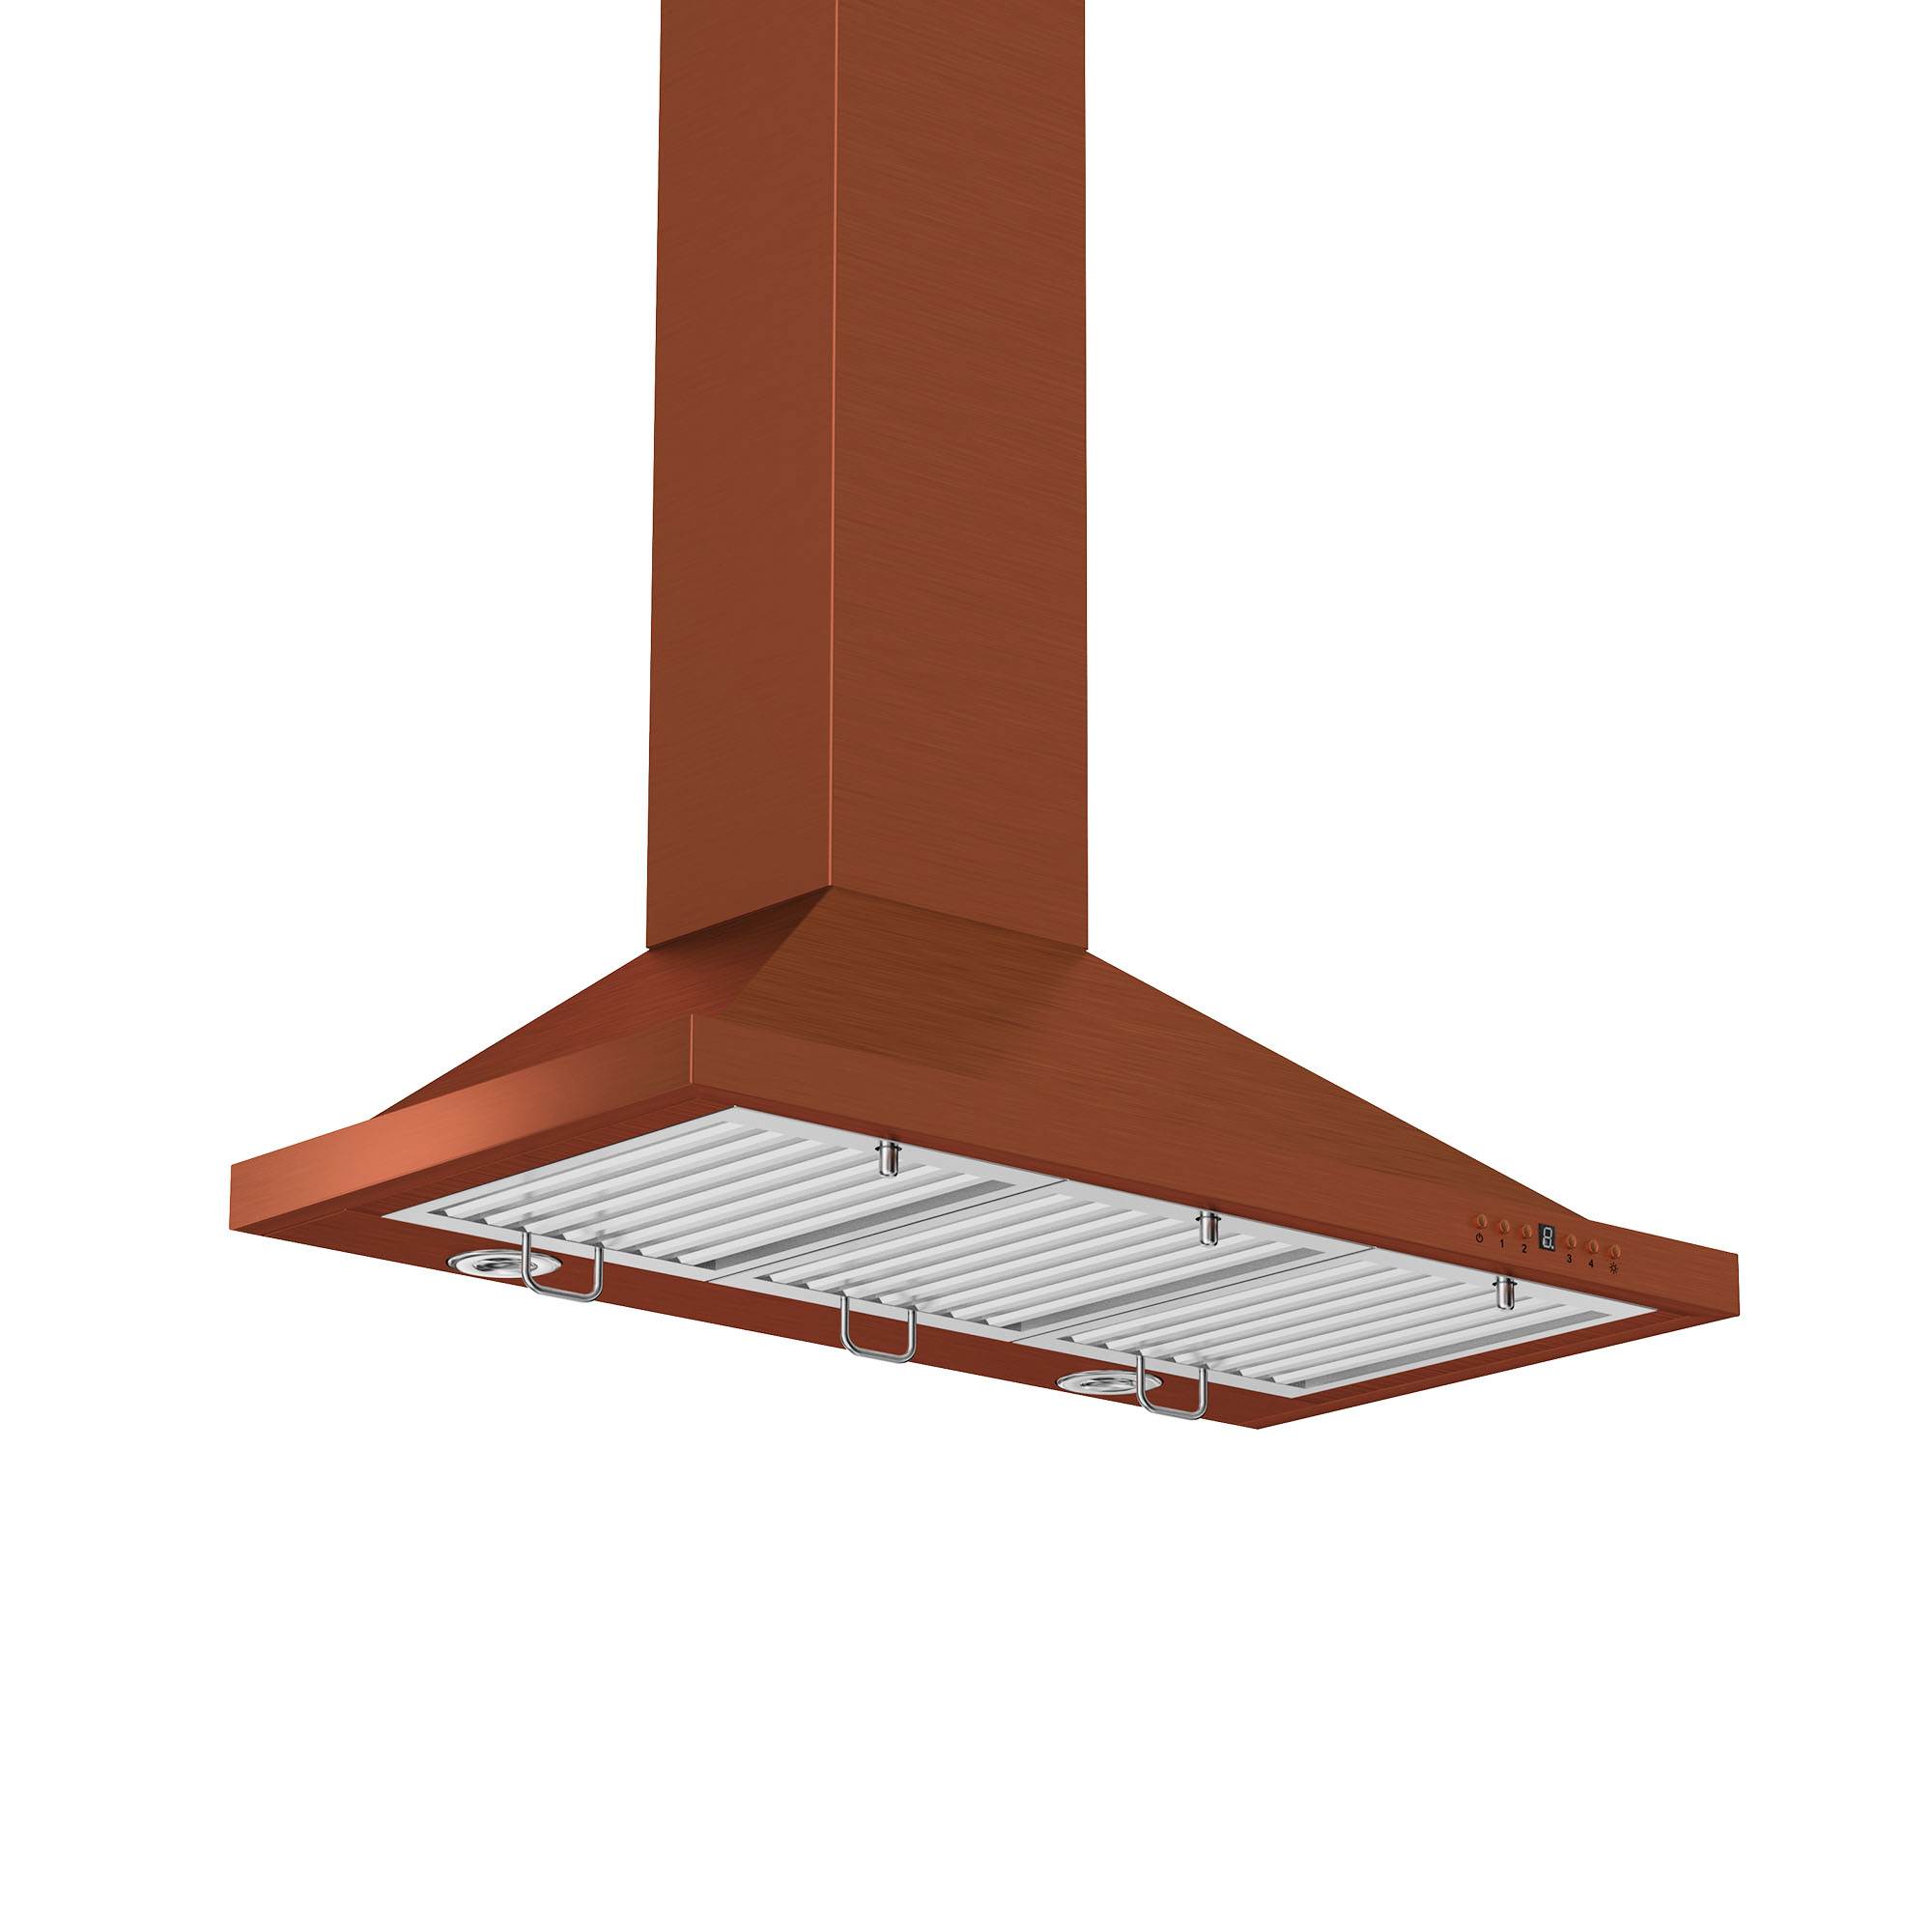 zline-copper-wall-mounted-range-hood-8KBC-side-under.jpg